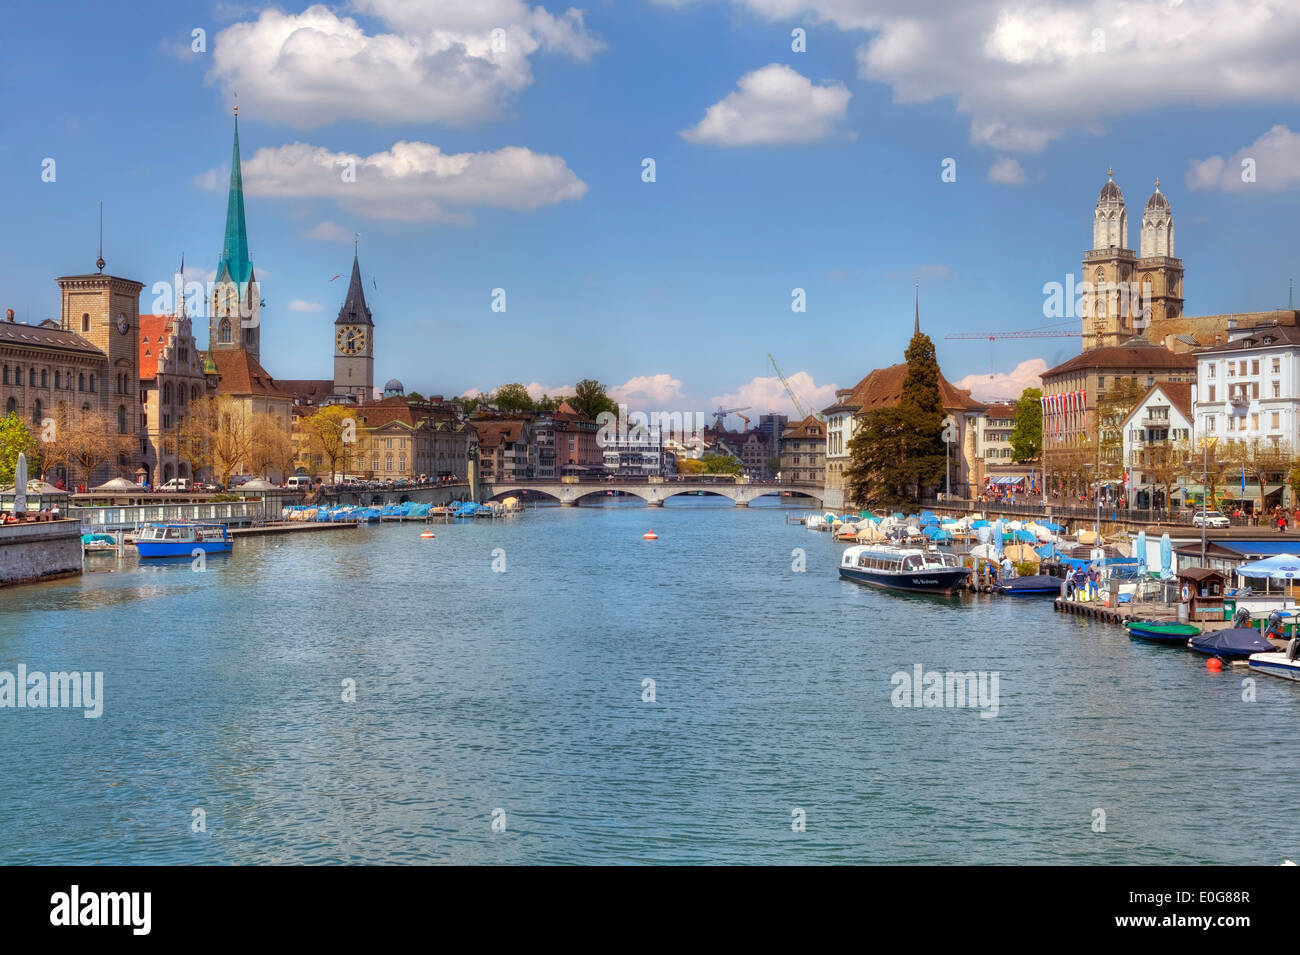 Zurich, old town, Switzerland - Stock Image